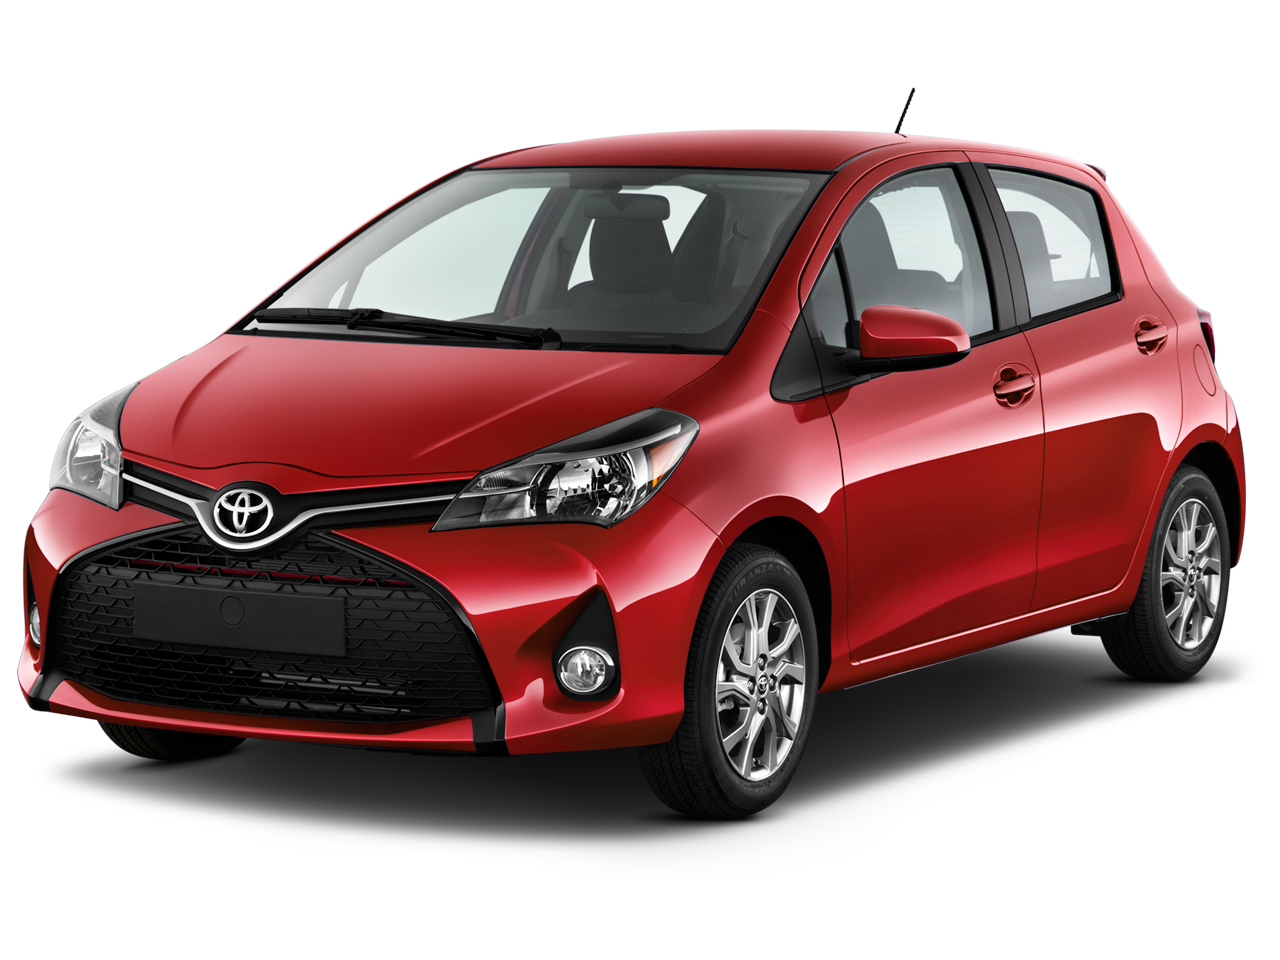 Msrp 2015 Toyota Corolla 2015 Toyota Yaris Review, Ratings, Specs, Prices, and Photos - The Car ...